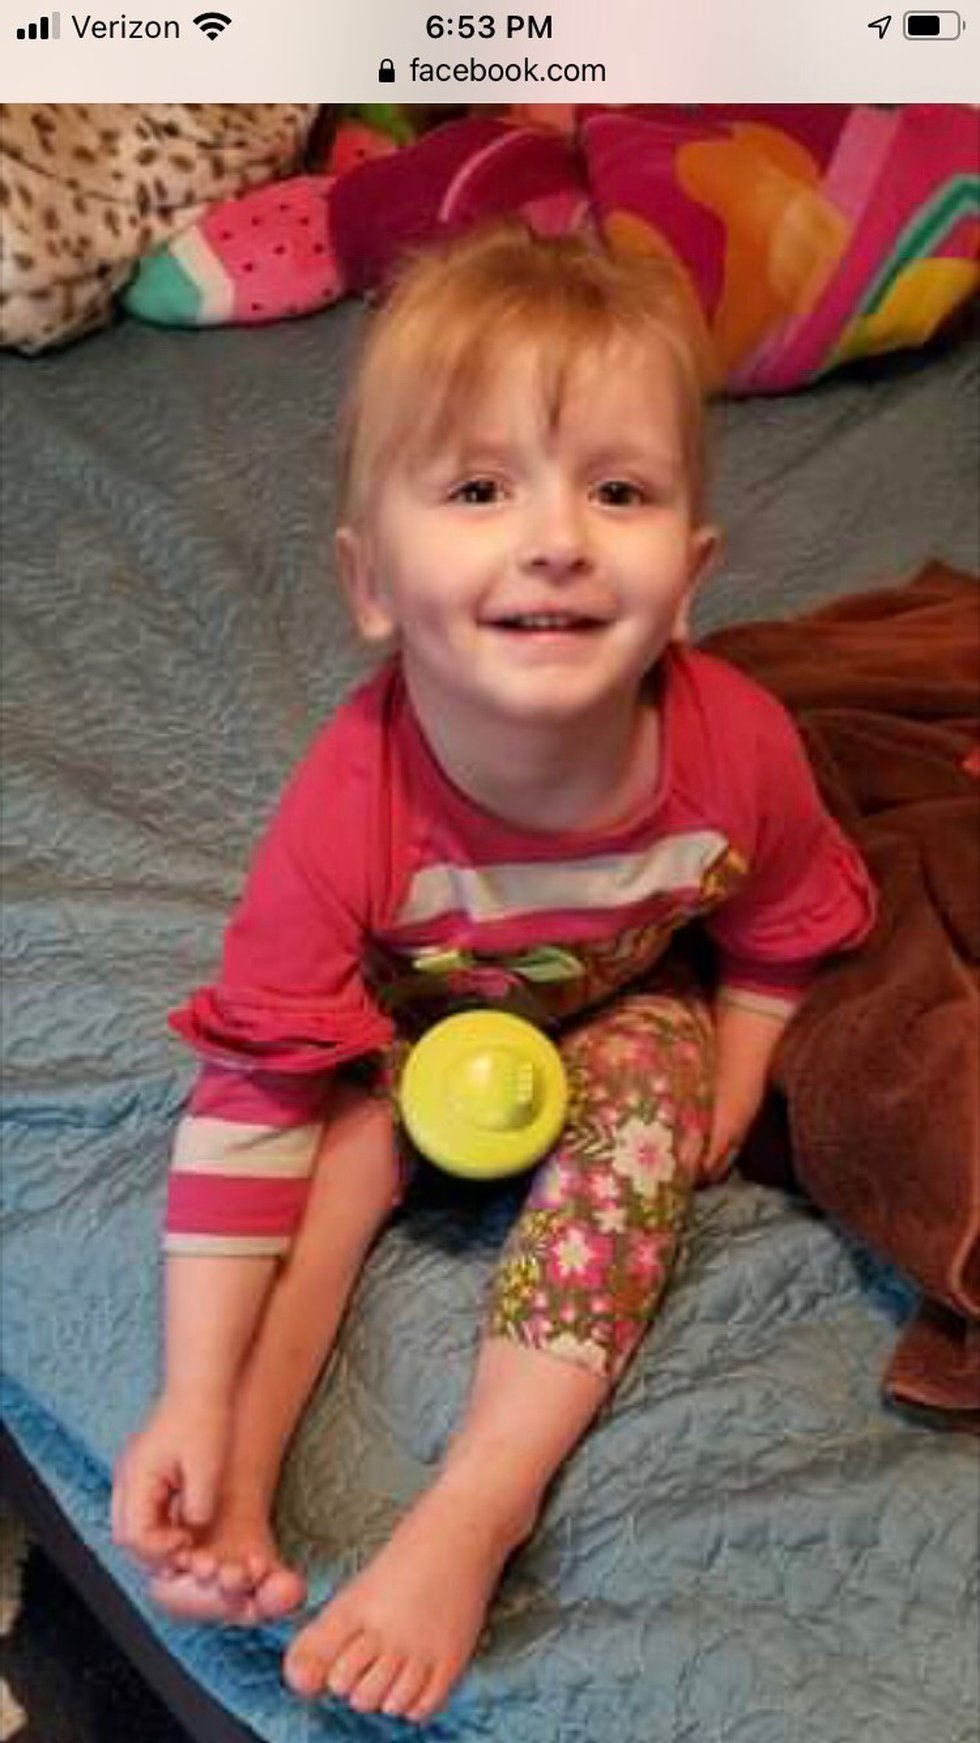 Anyone with information on this child as asked to contact the Augusta Co. Sheriff's Office.